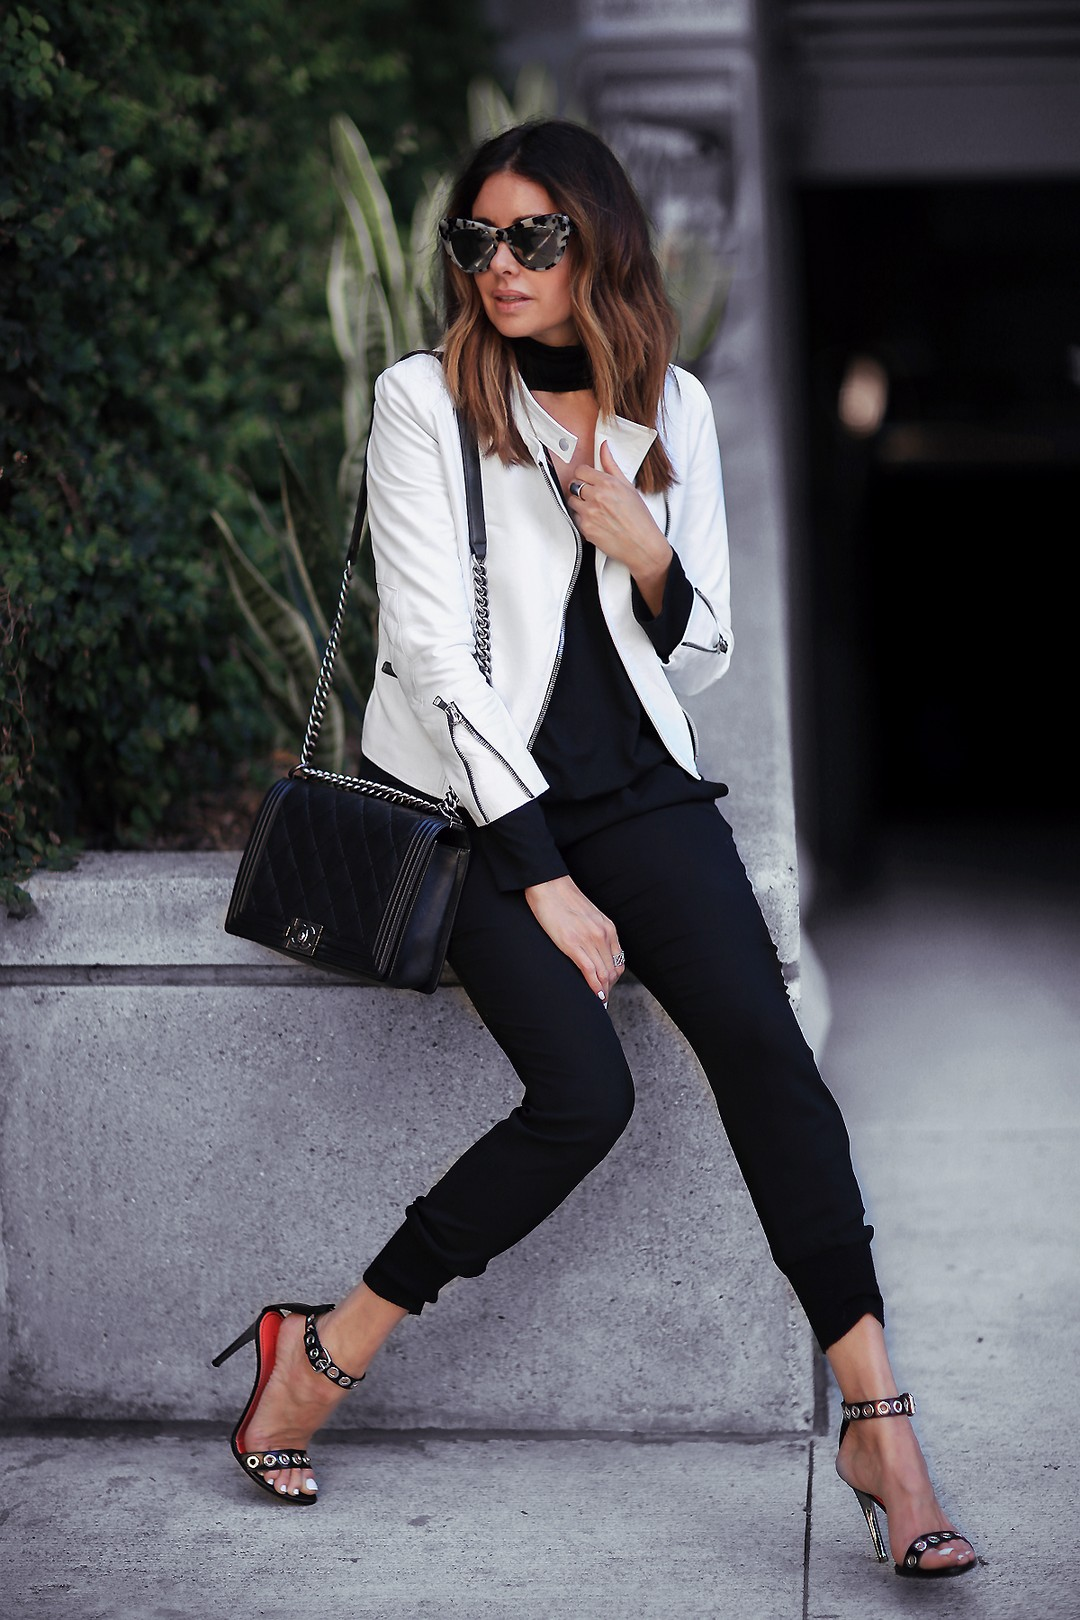 Monochrome outfit2